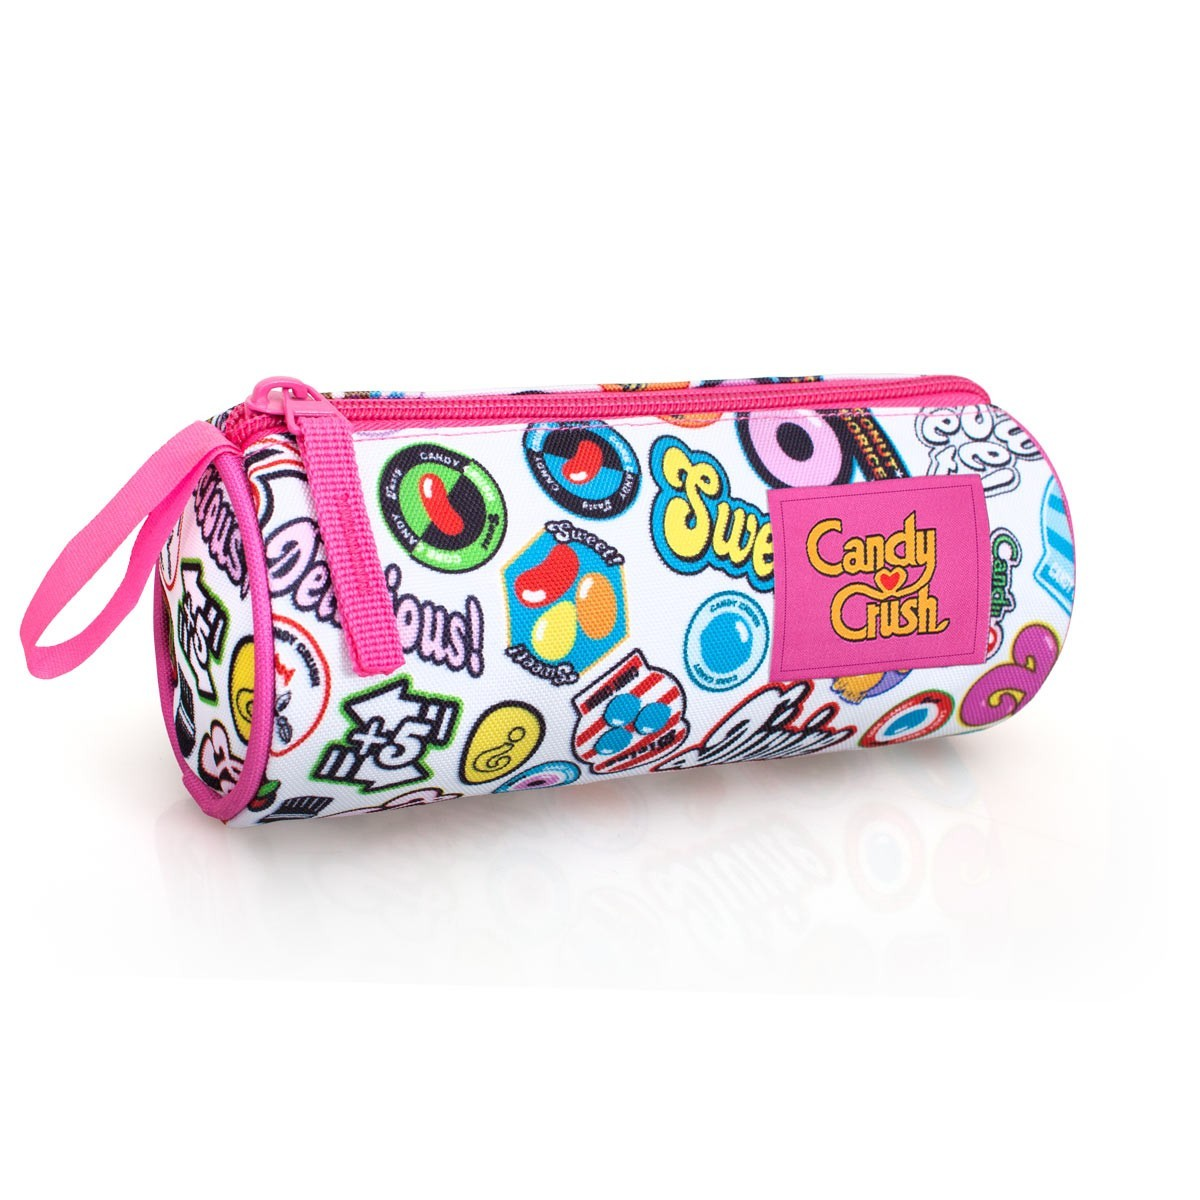 Candy Crush White Pencil Case